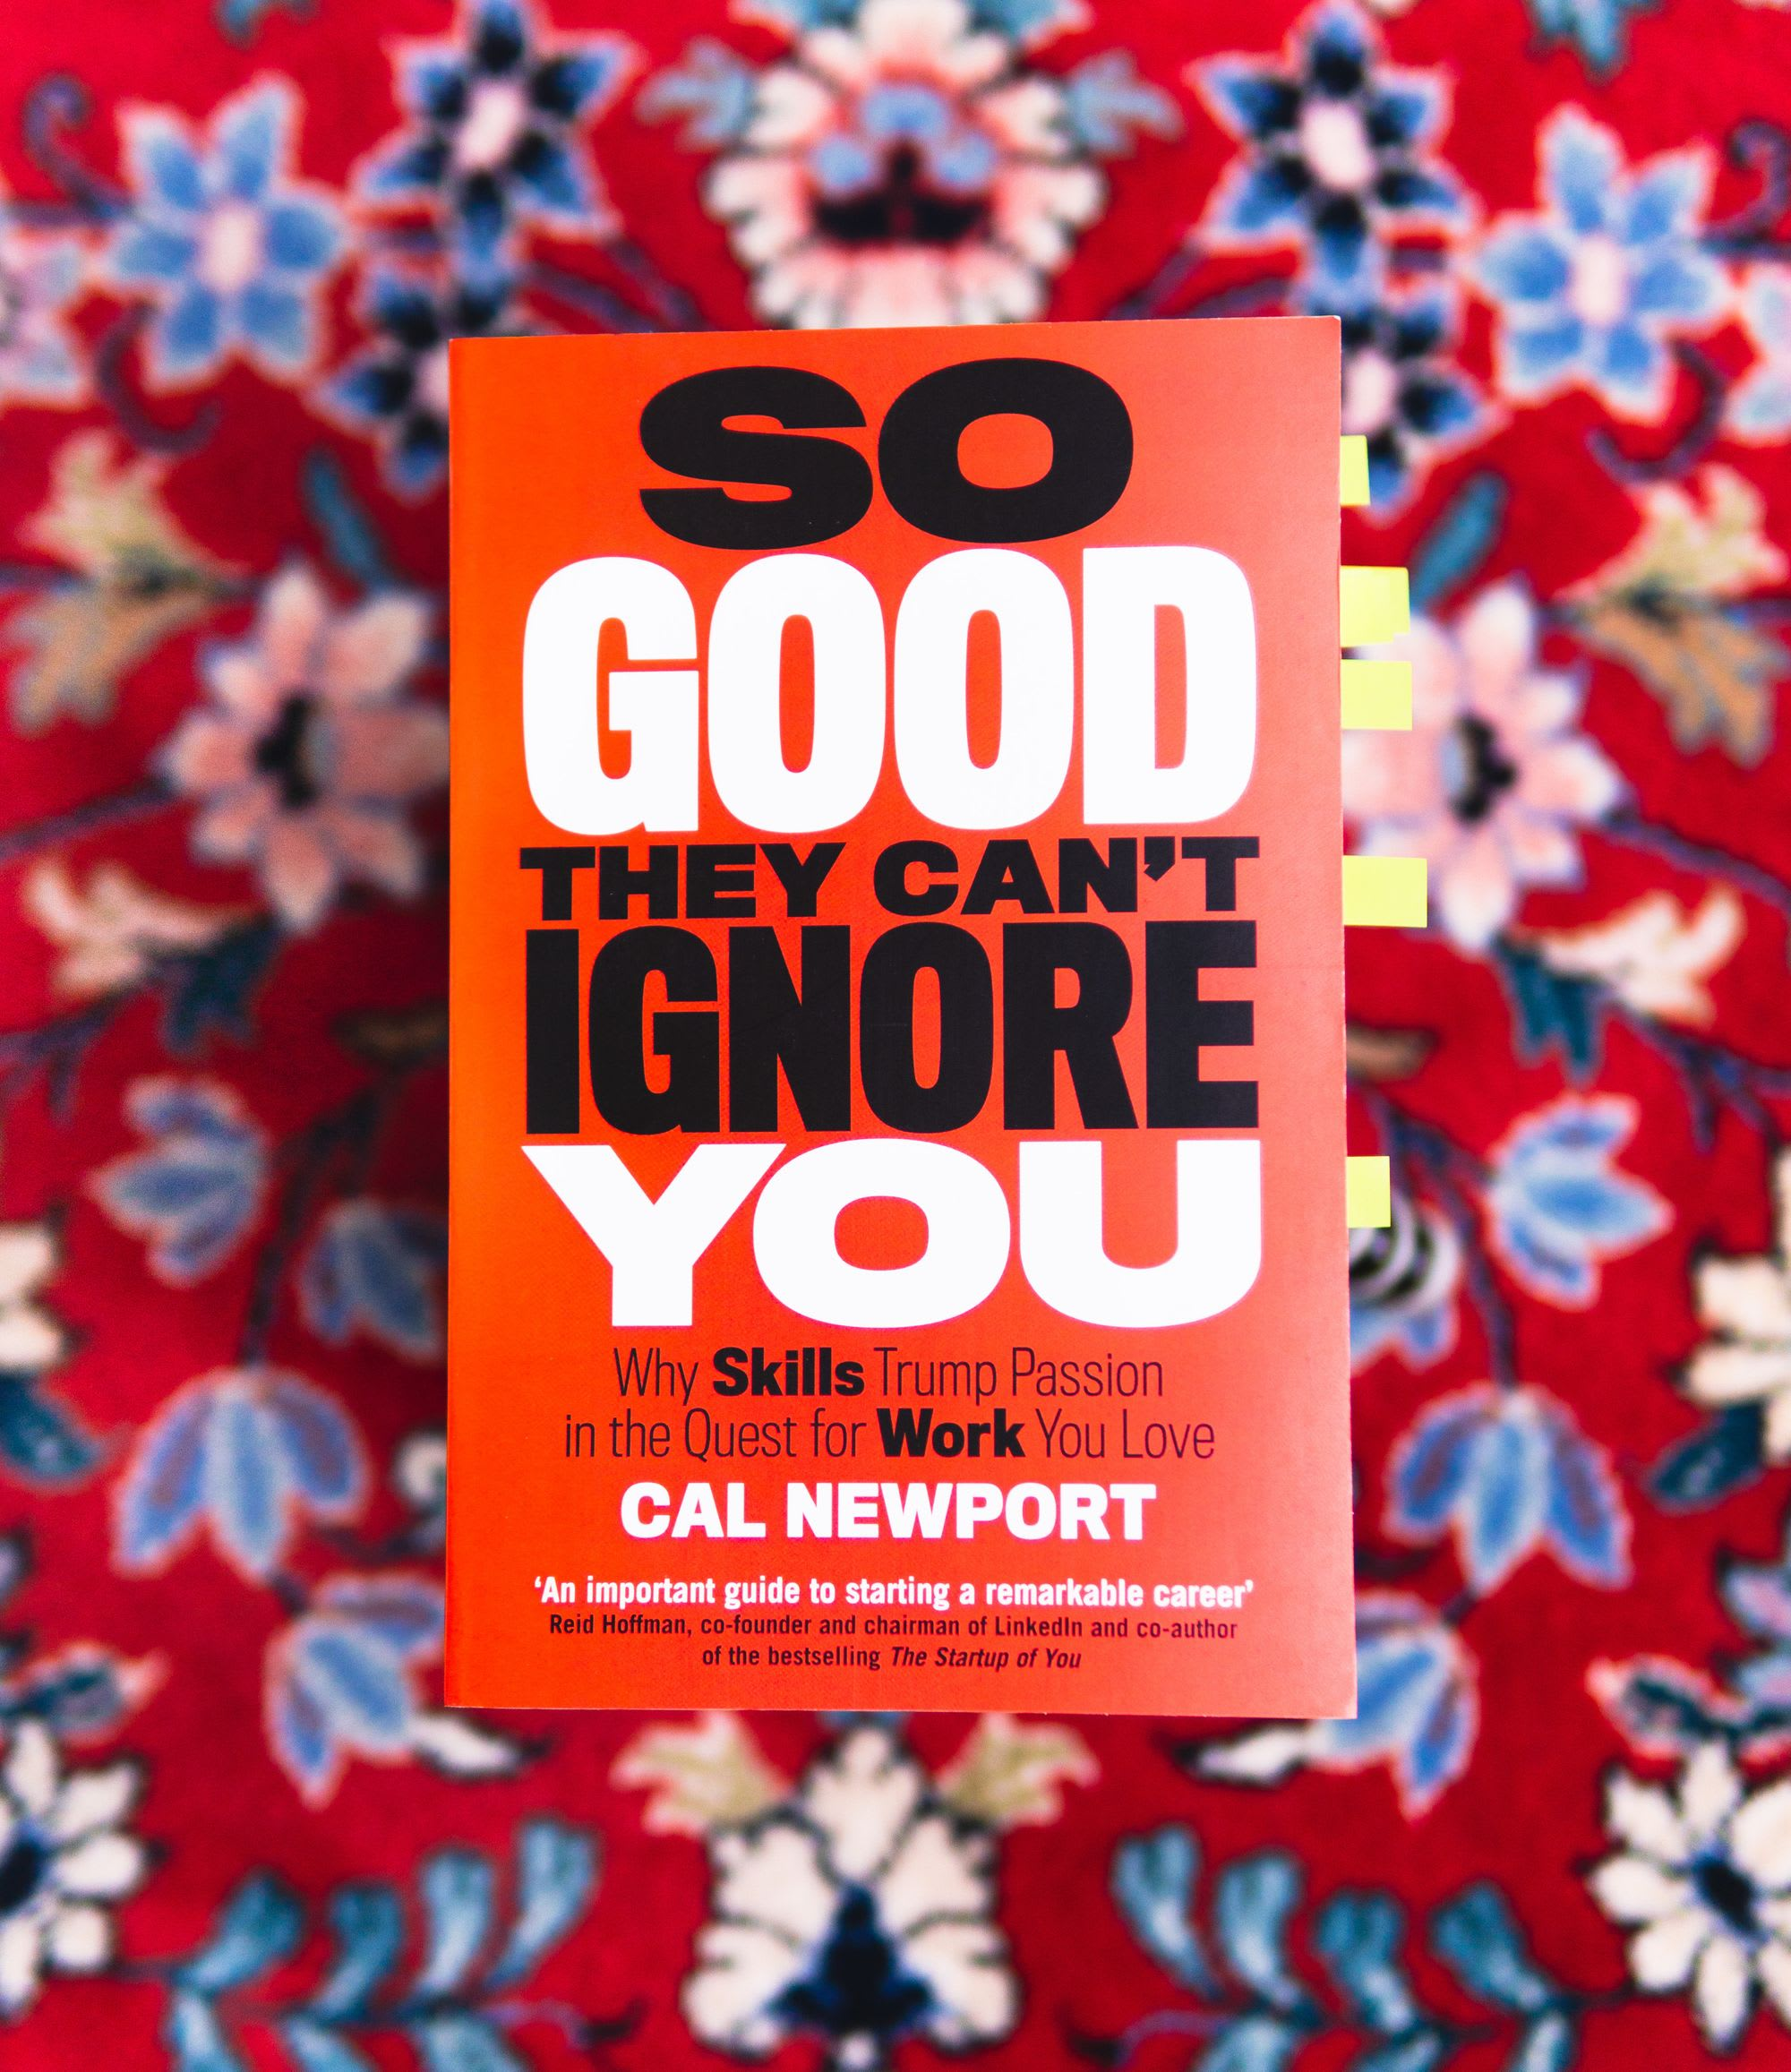 """Cal Newport - """"So Good They Can't Ignore You""""  - QuickSummary"""